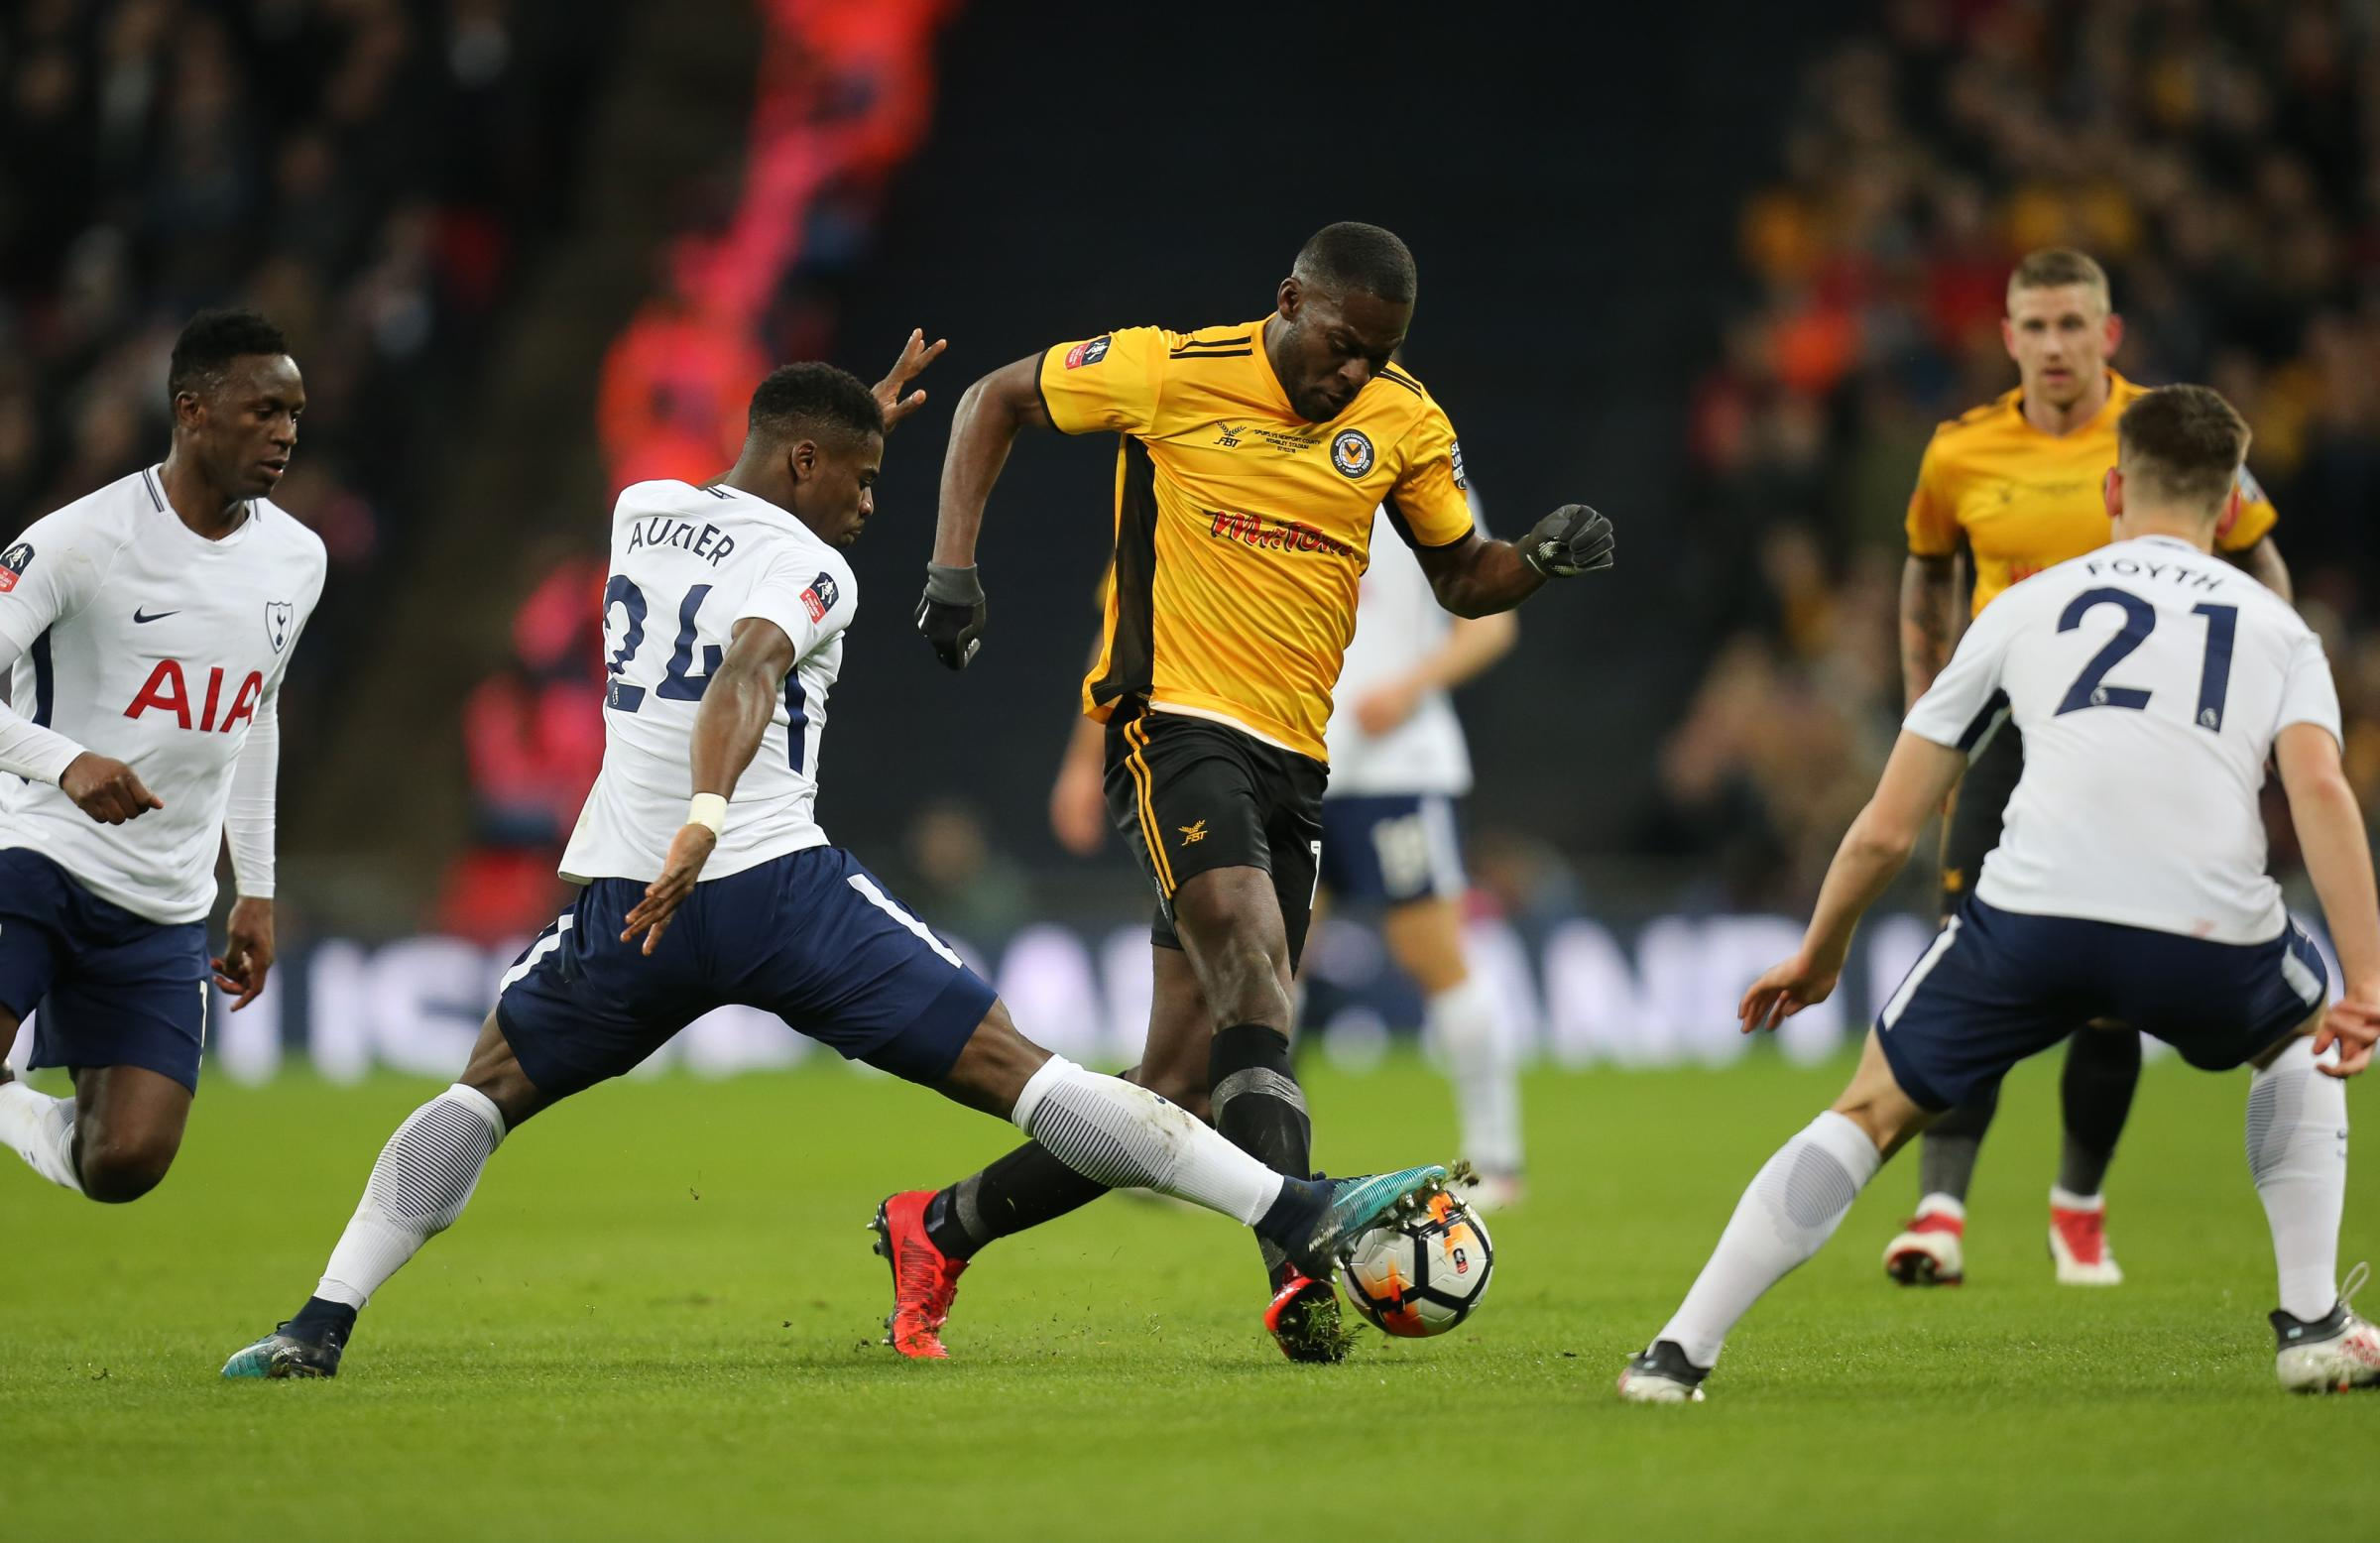 STAR MAN: Newport County forward Frank Nouble took the fight to Tottenham Hotspur at Wembley. Pictures: Huw Evans Agency